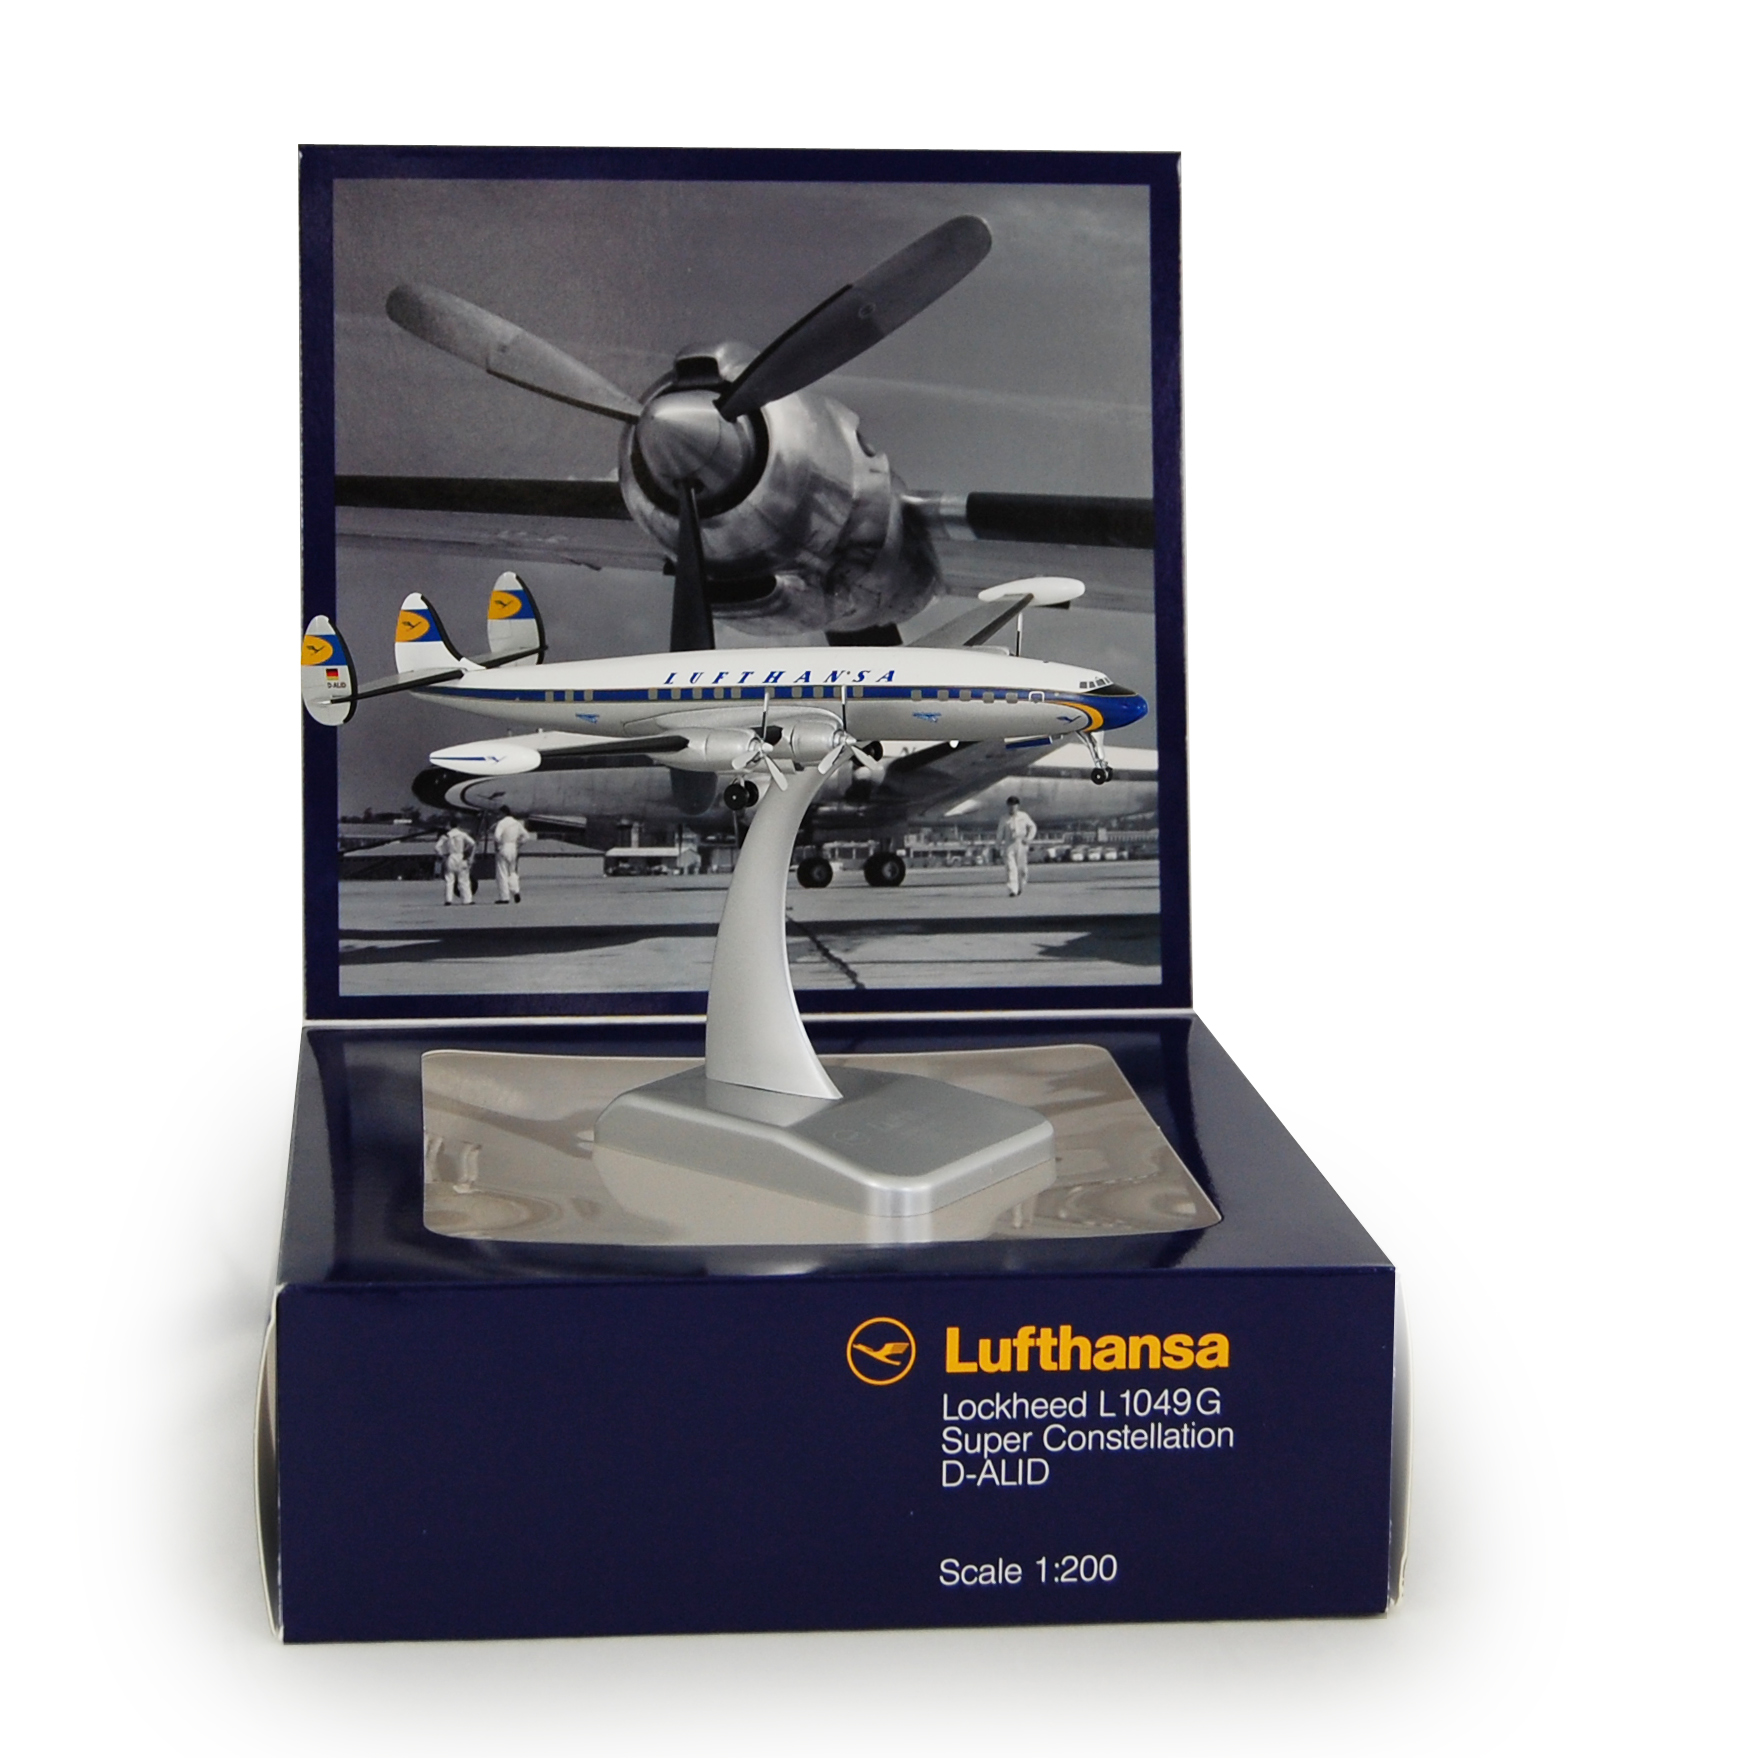 Limox Lufthansa Lockheed Super Constellation Maßstab 1:200